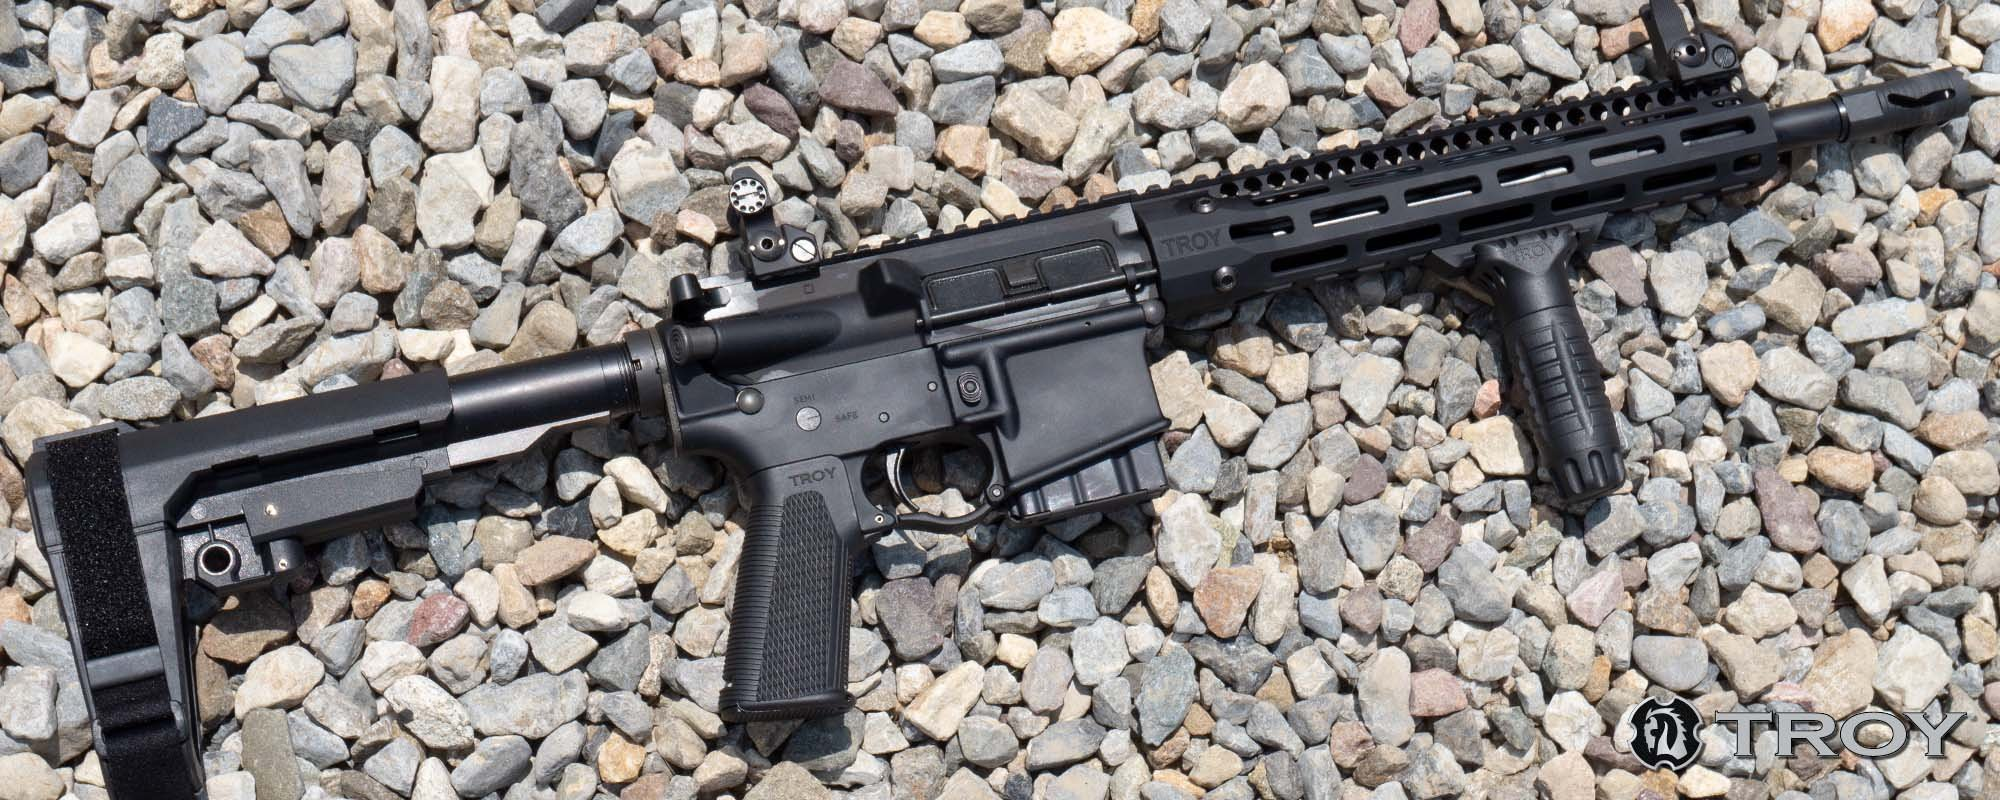 """Check Out The The Troy A4 """"Other Firearm"""" On 8/11 @ Union Hill Gun Club"""